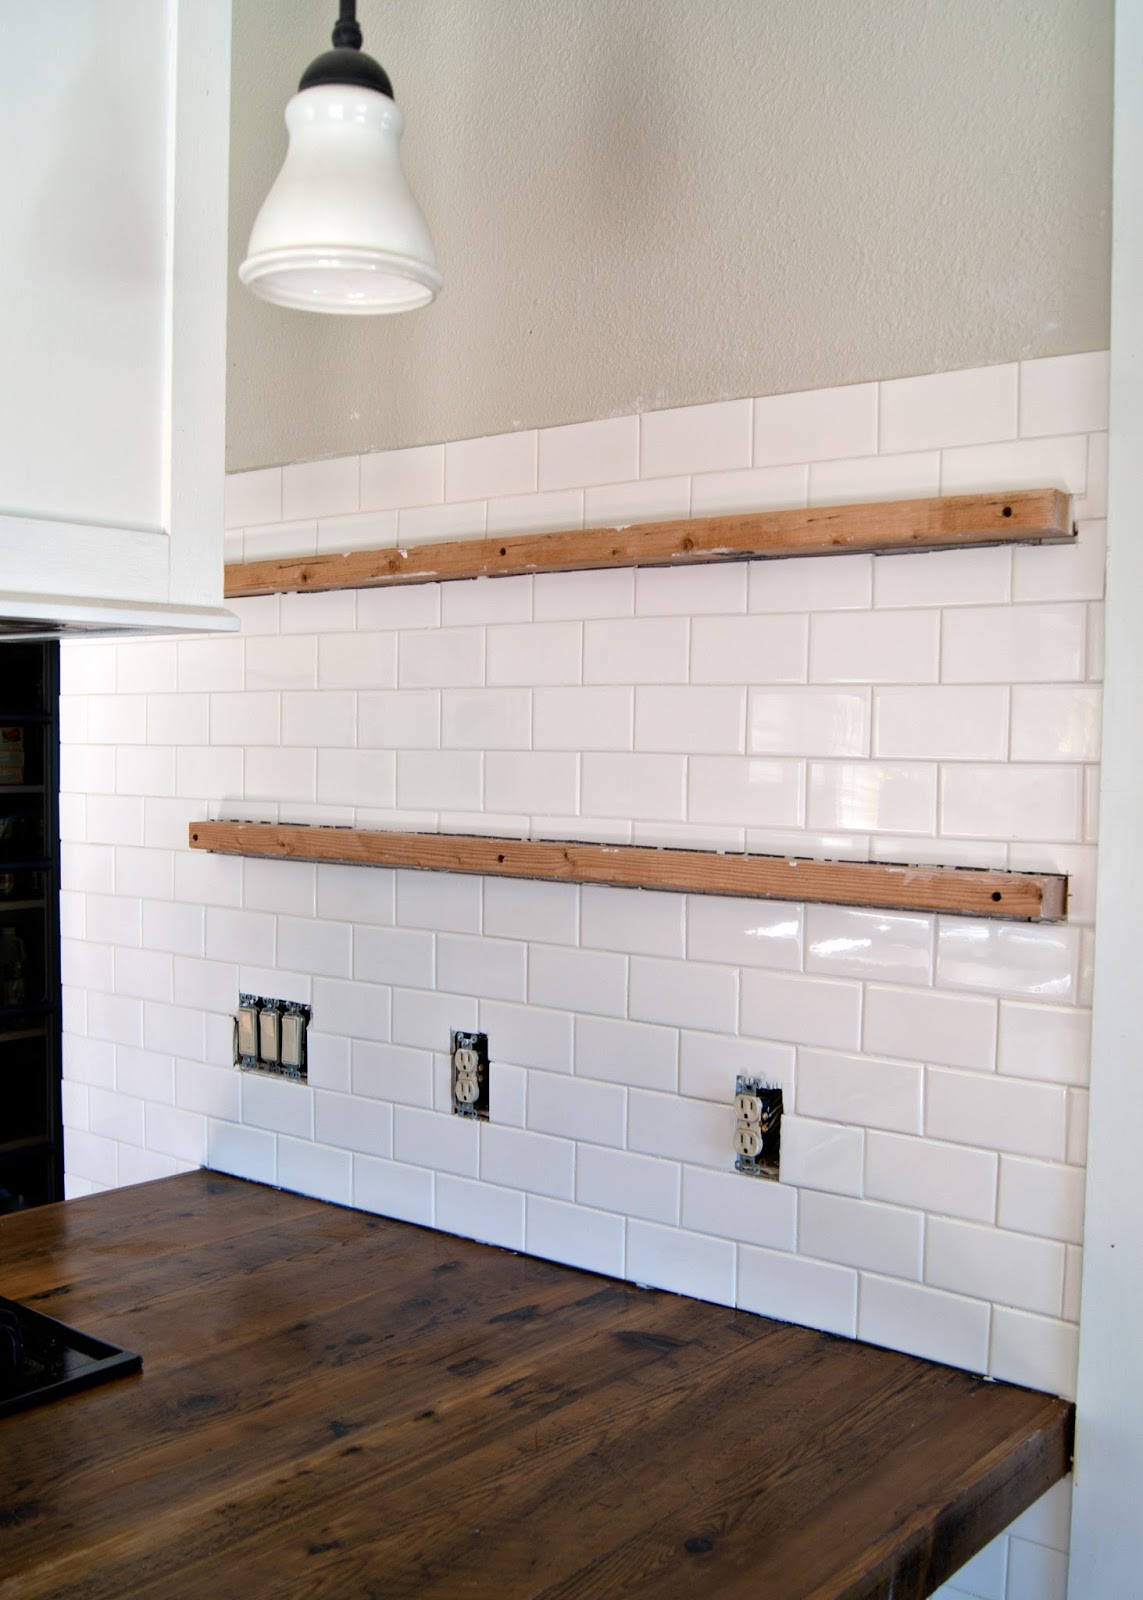 Subway tile installation tips on grouting with fusion pro im dailygadgetfo Gallery